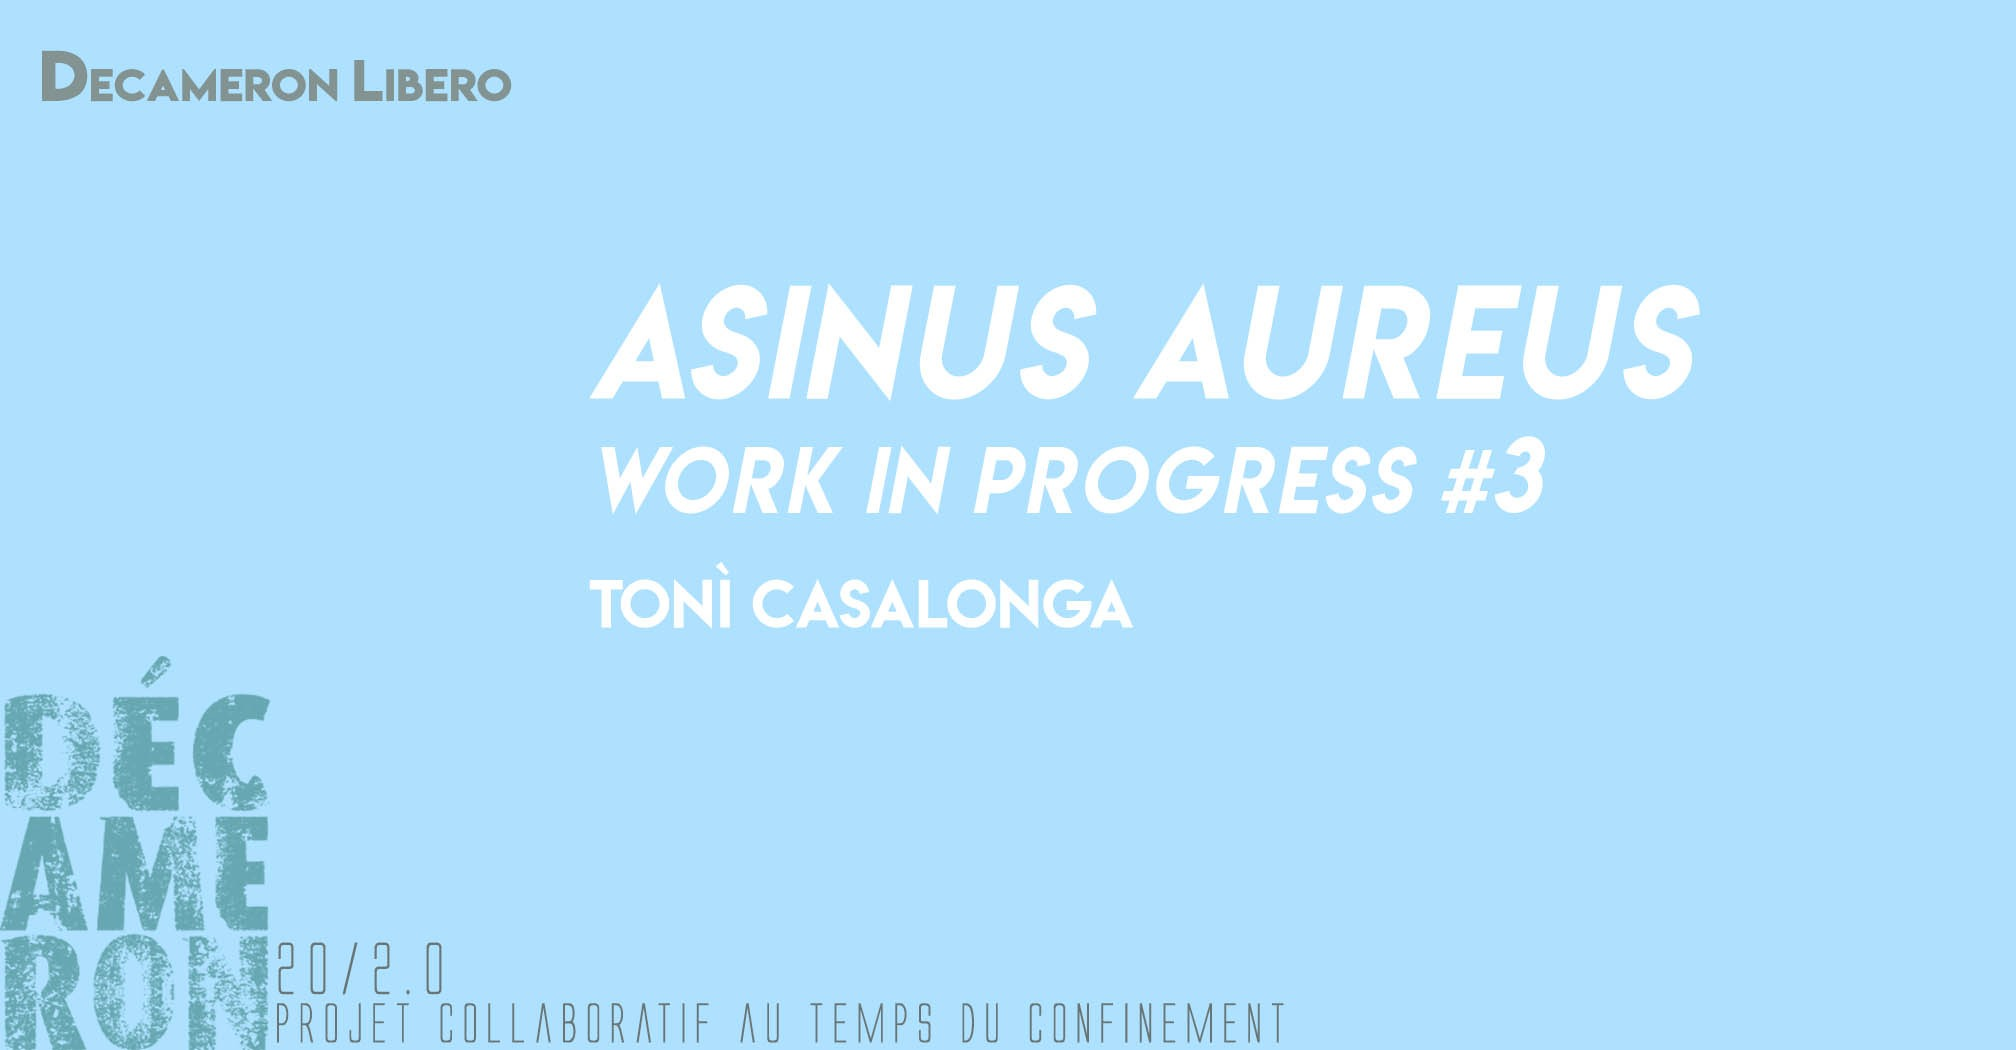 Asinus Aureus - Work in progress #3 - Tonì Casalonga